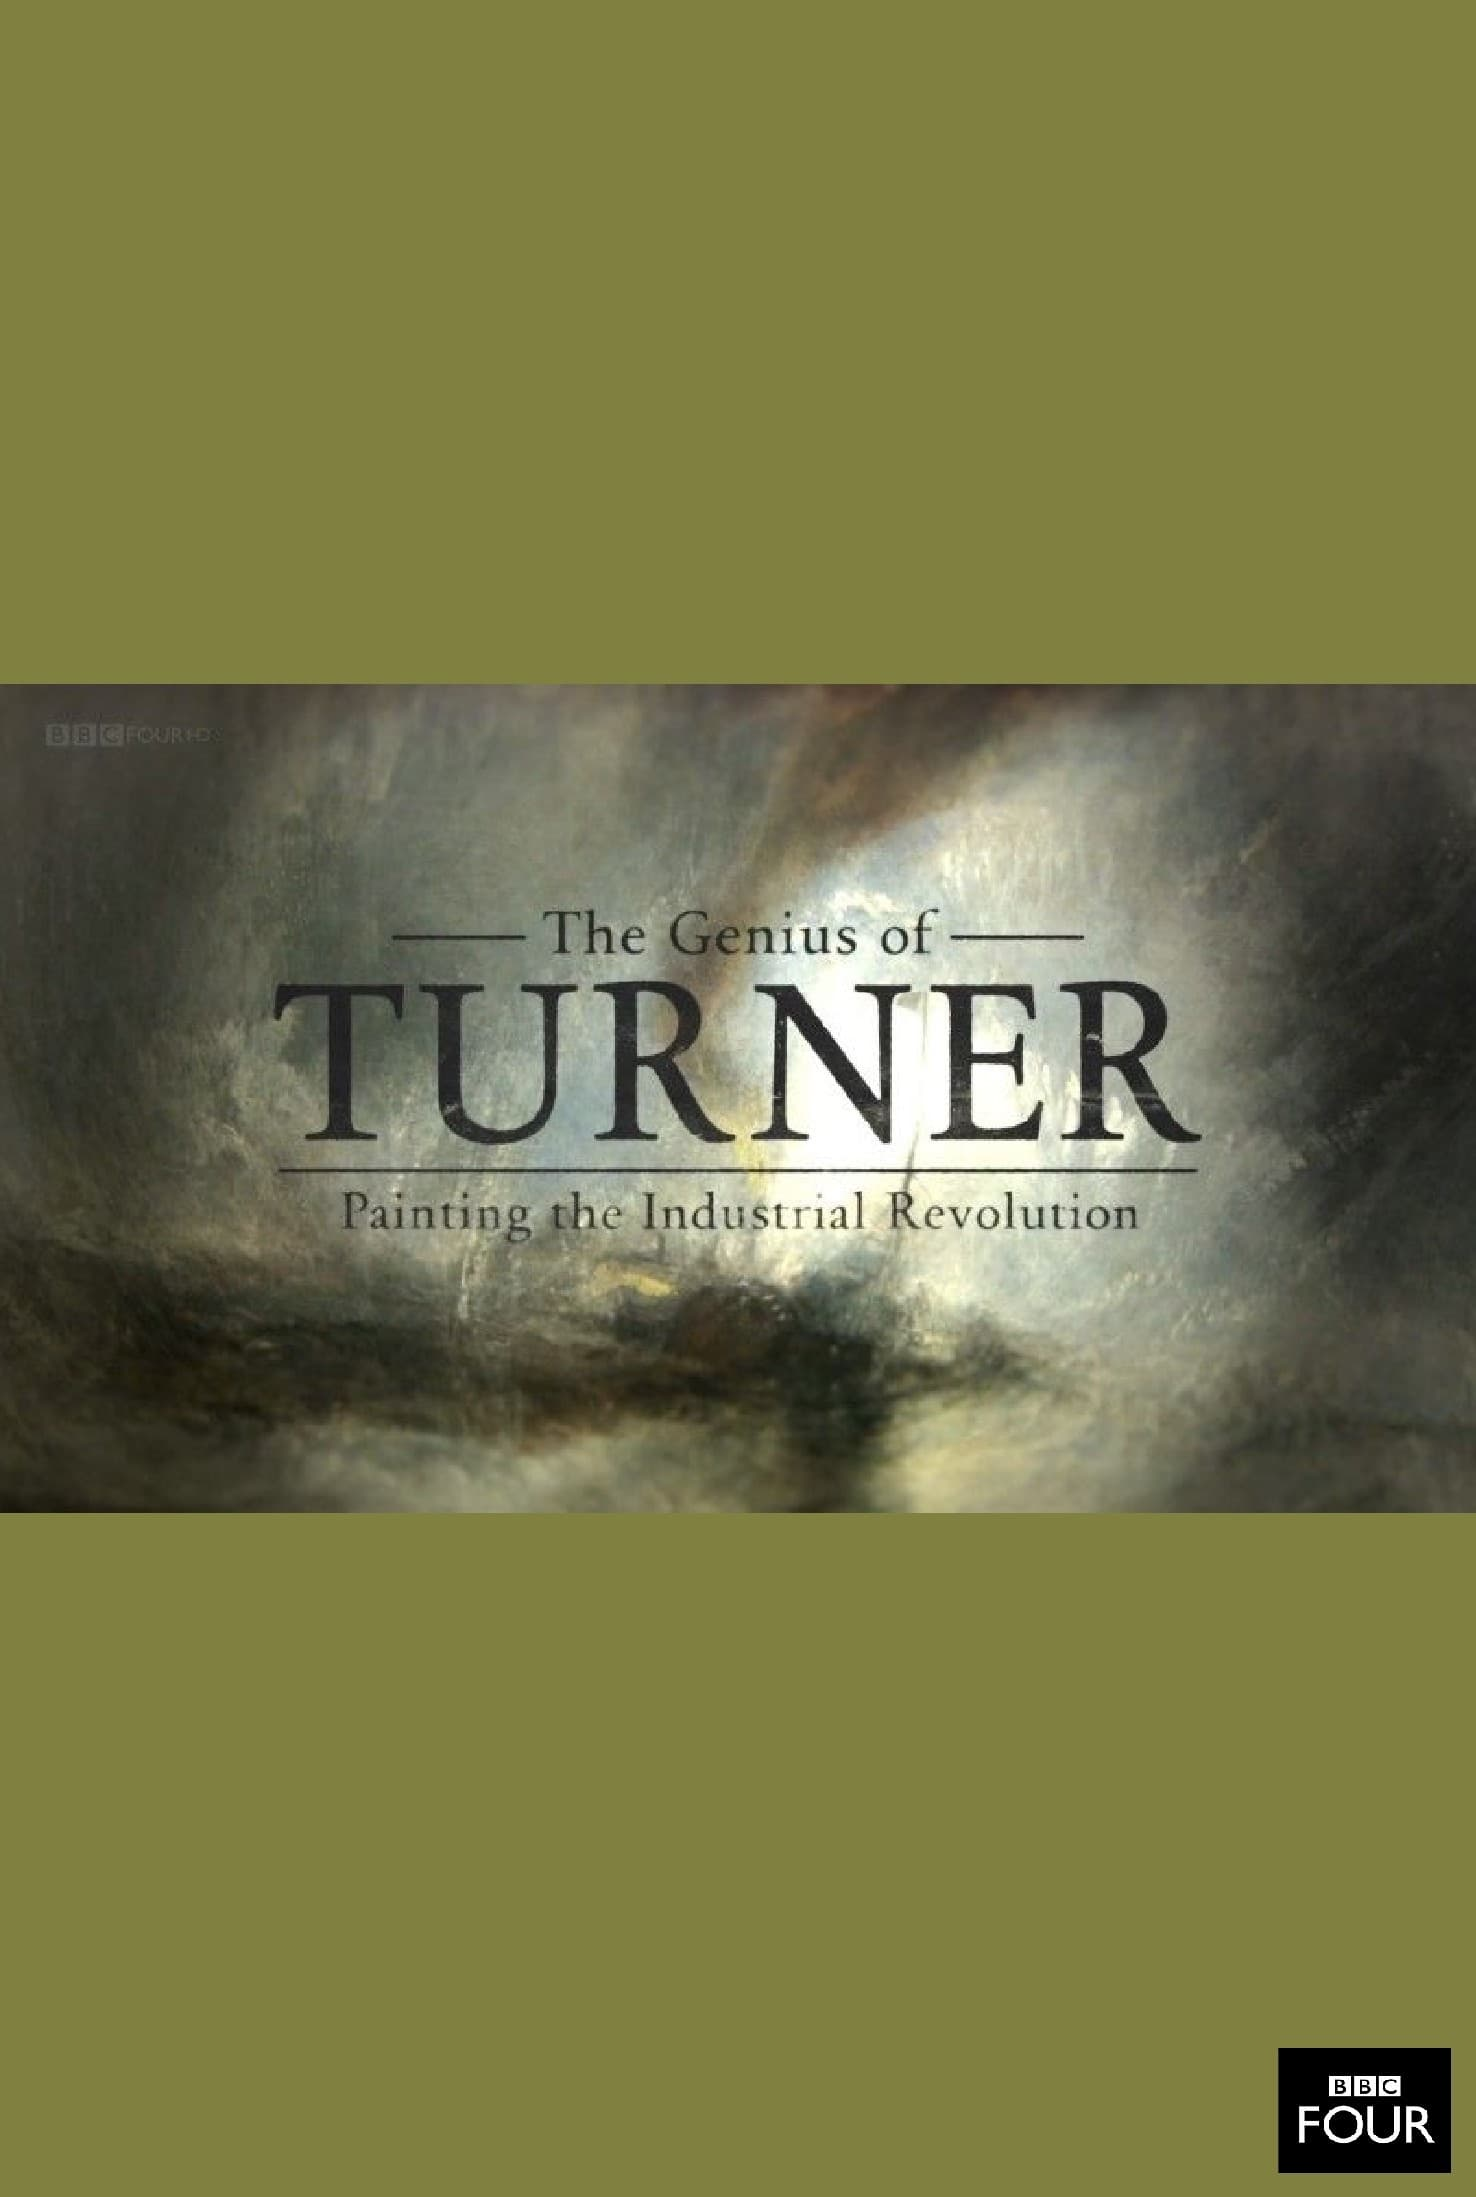 watch The Genius of Turner: Painting the Industrial Revolution 2013 Stream online free